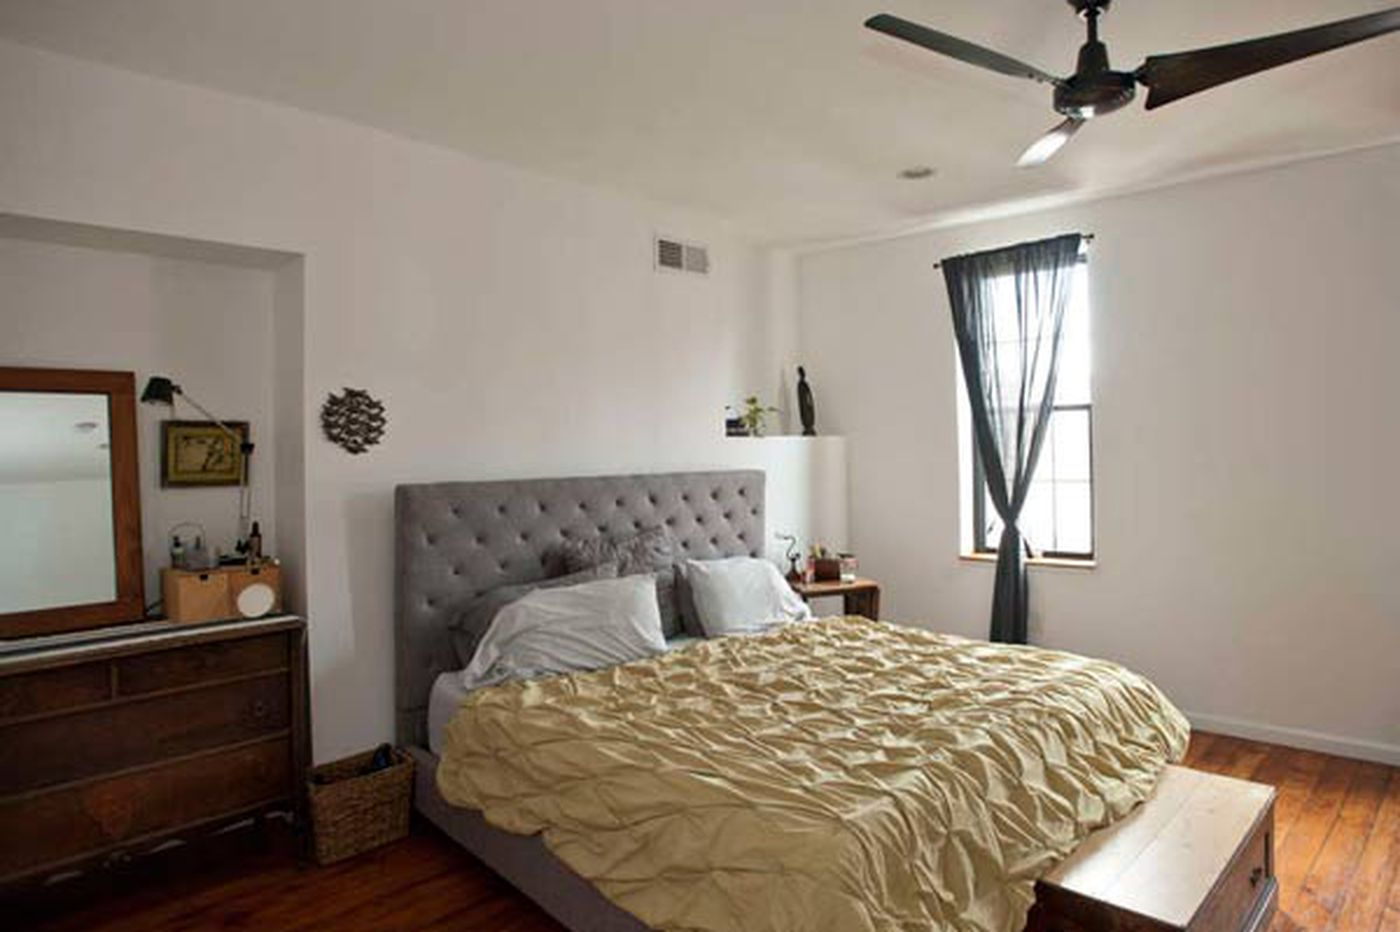 203k mortgage financed Fishtown purchase and rehab